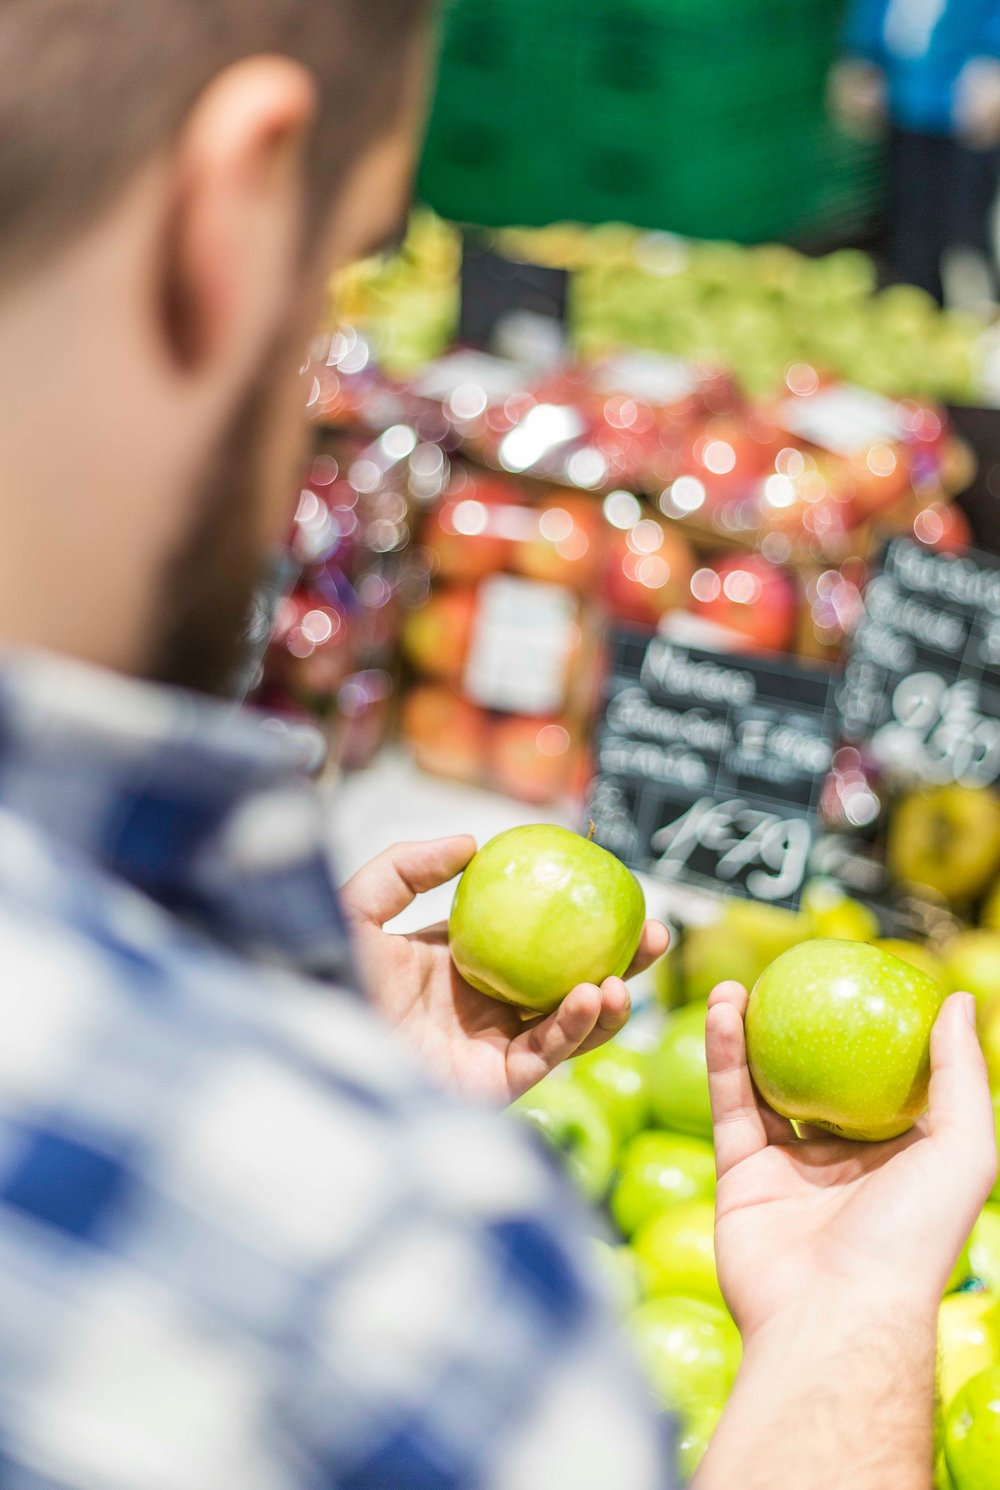 Grocery Shopping - Eating Healthy without breaking the bank